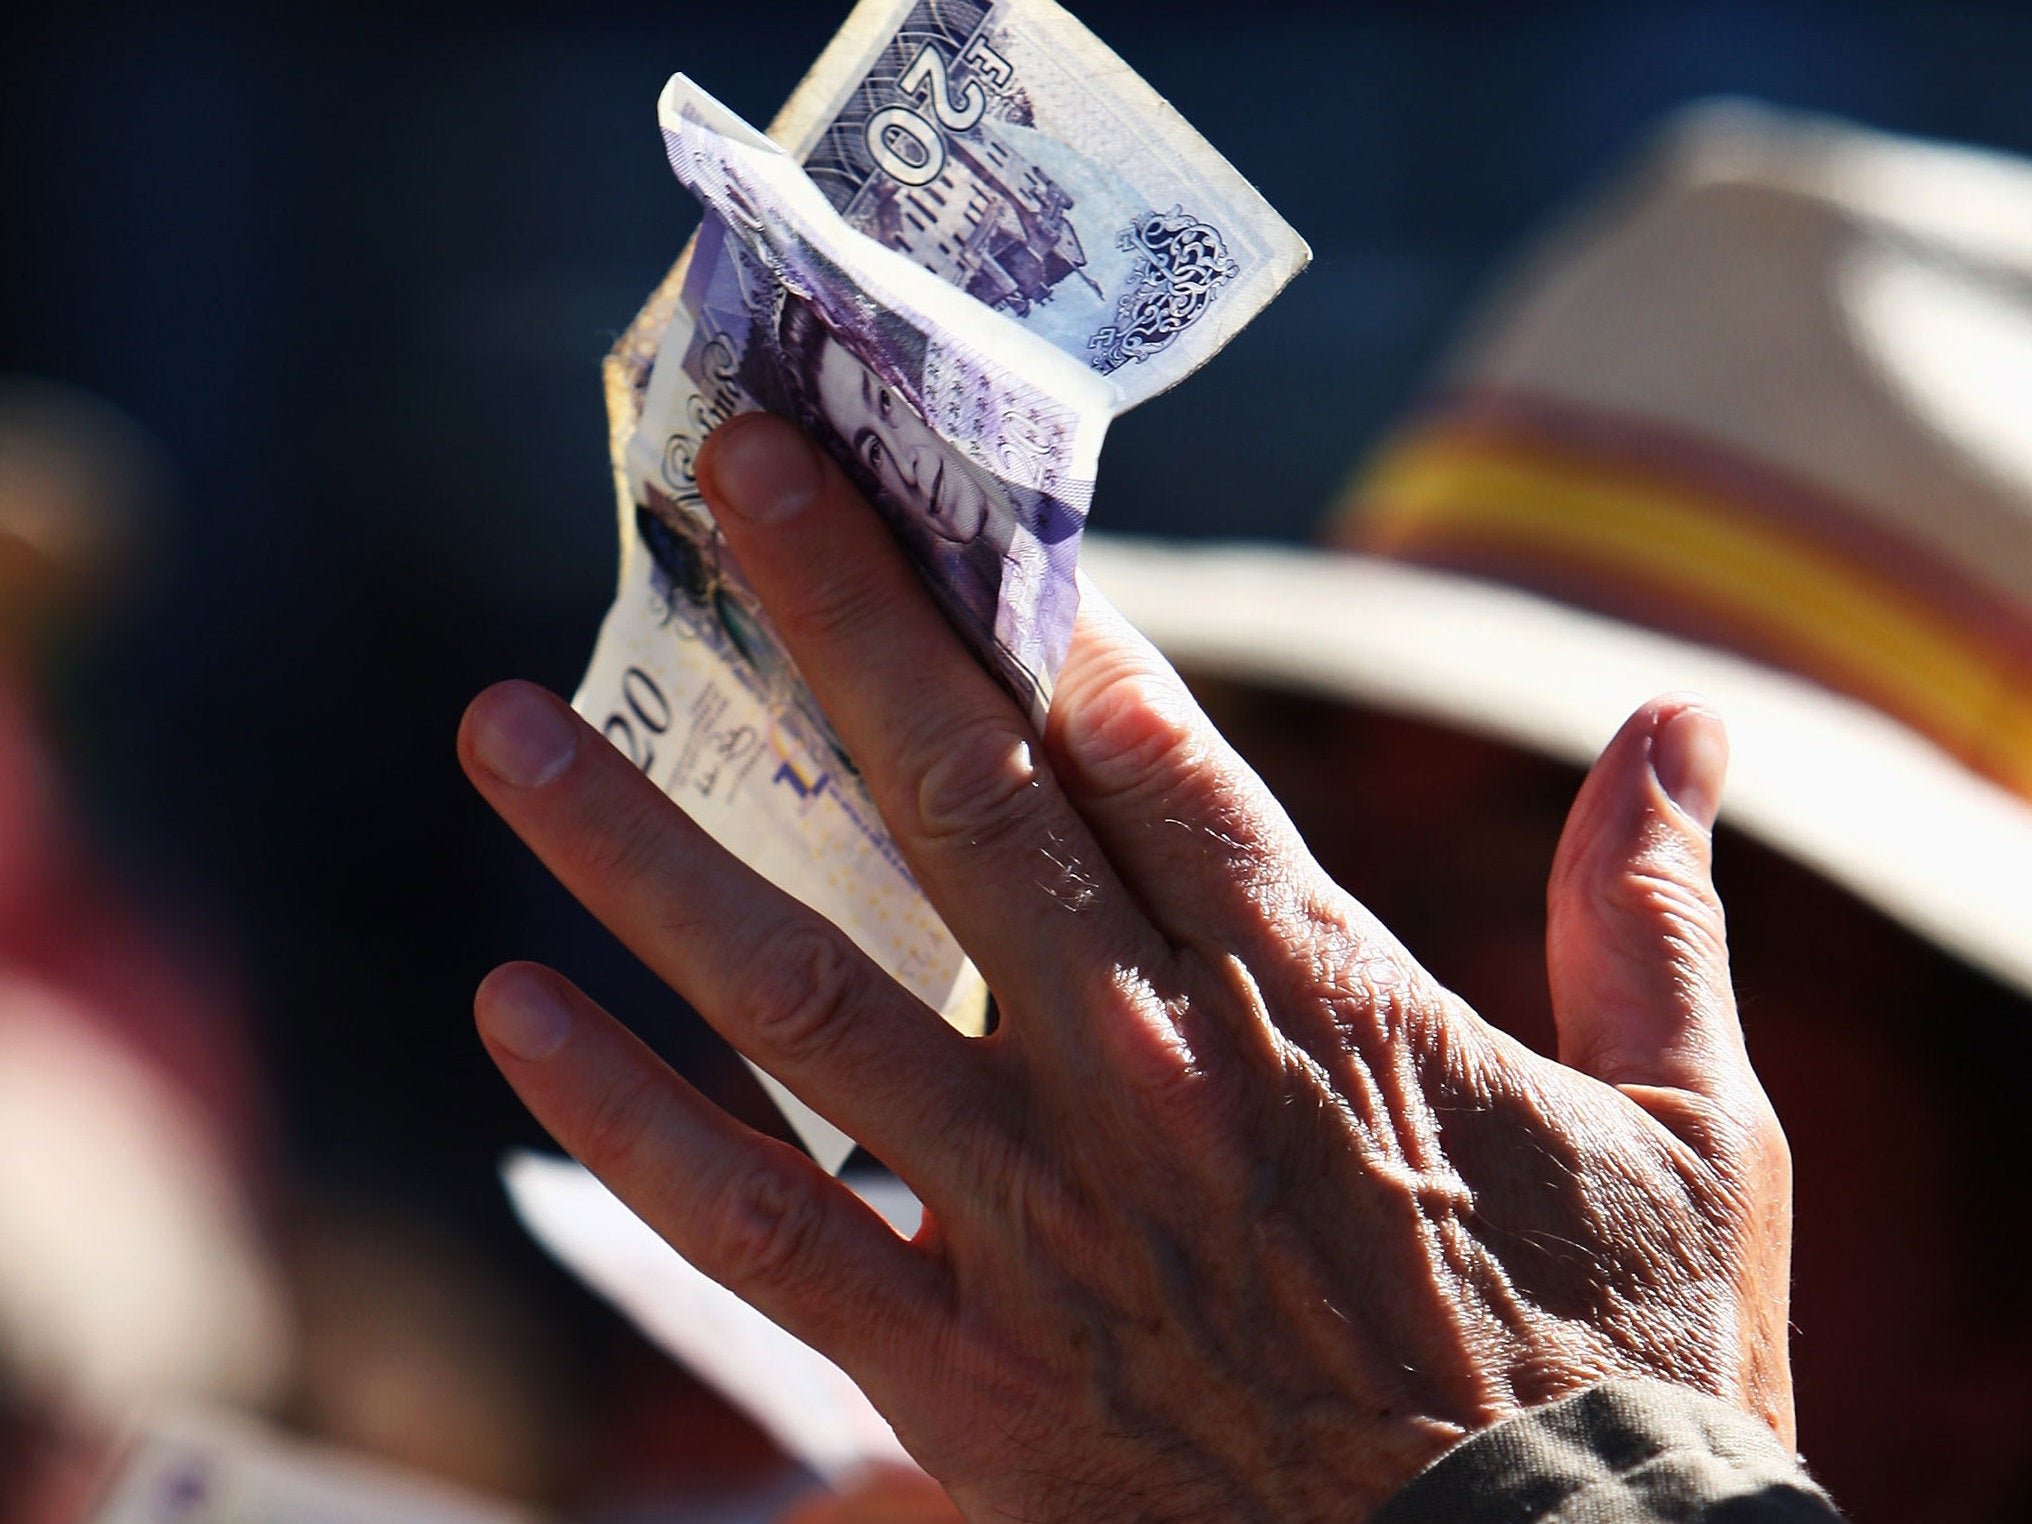 £15bn worth of inheritance goes unclaimed, figures show